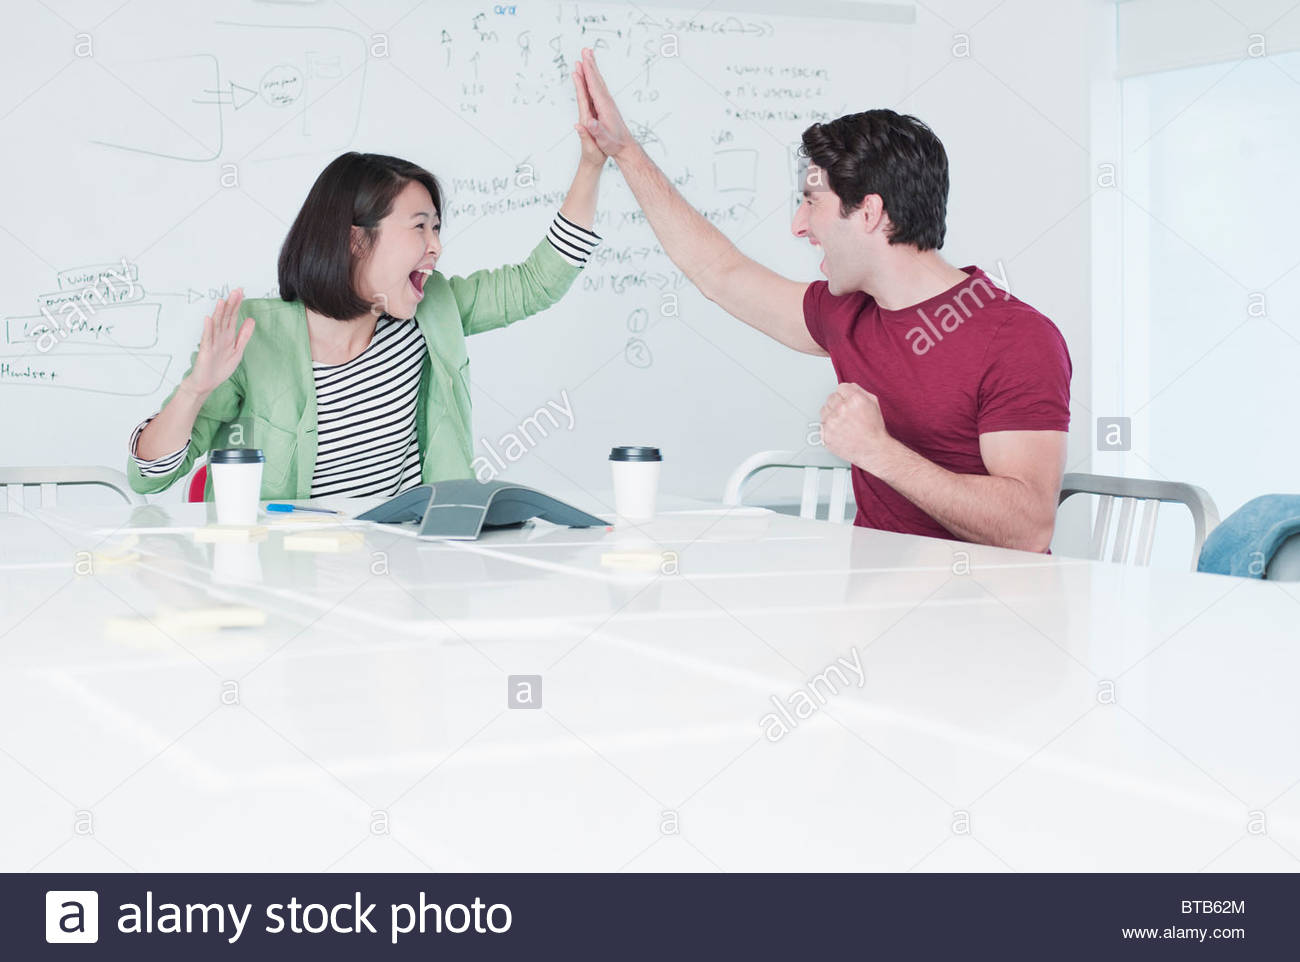 Excited business people giving high five in conference room - Stock Image